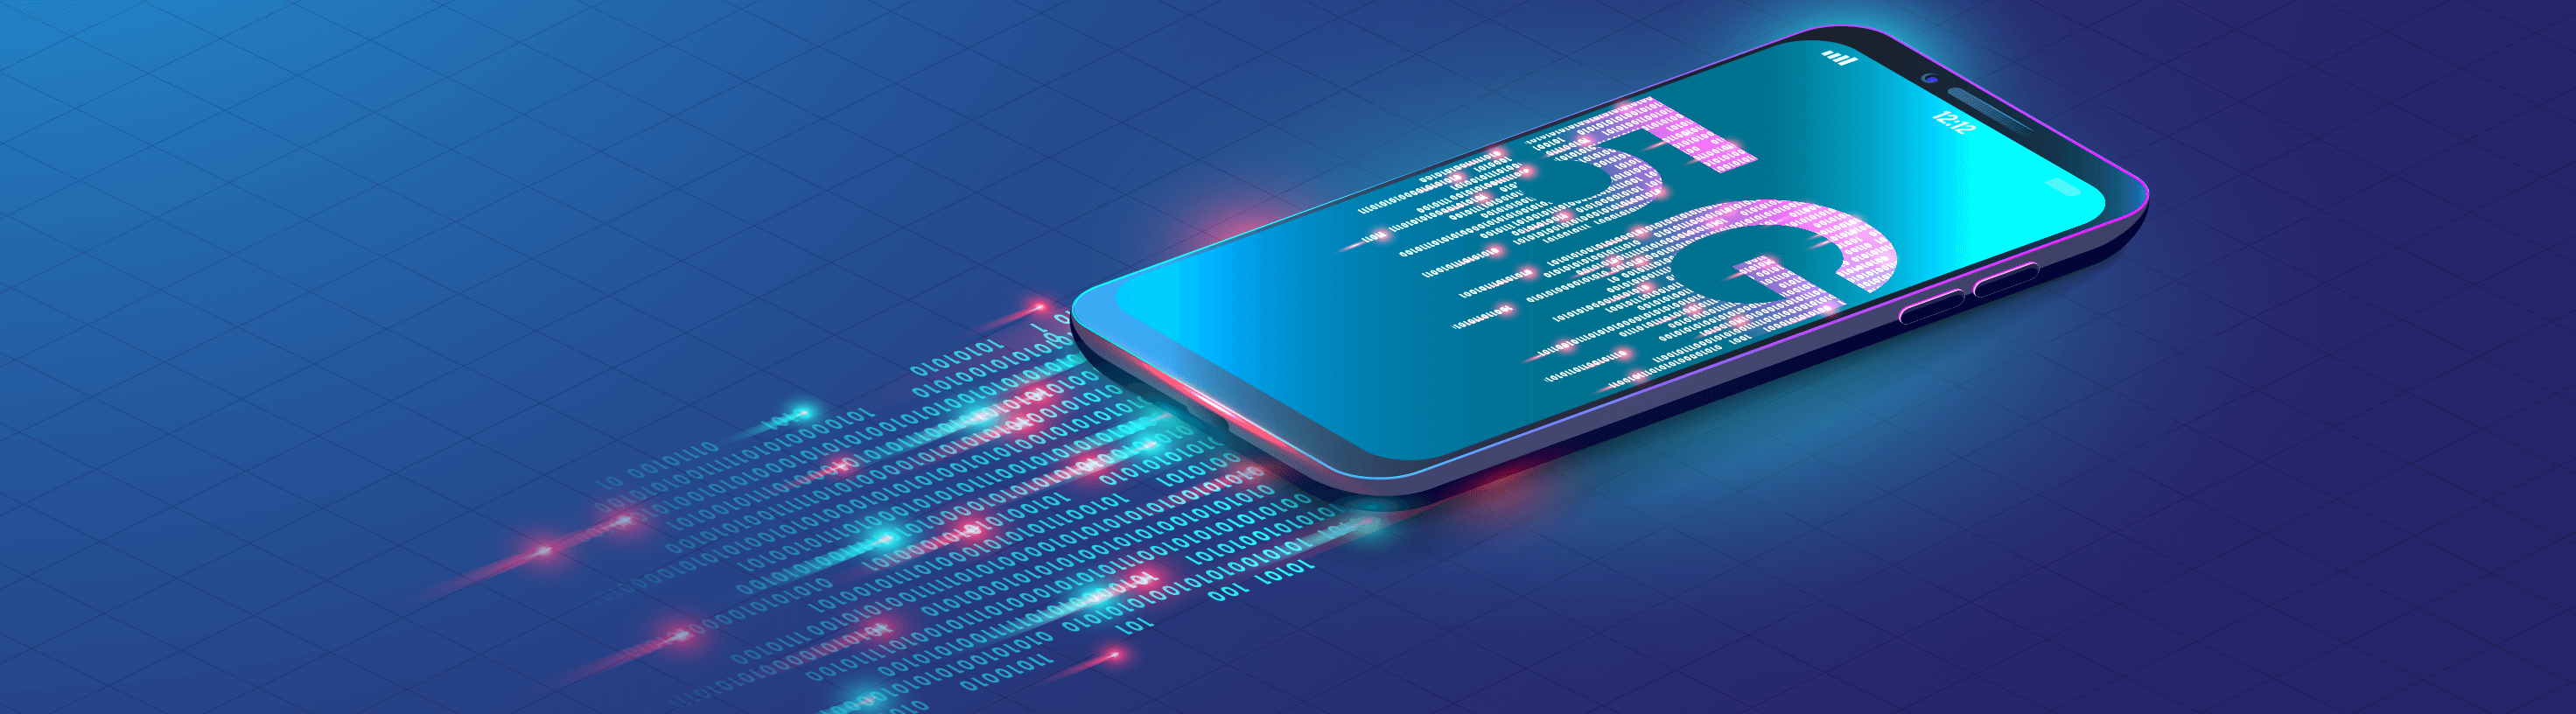 Impact of 5G on enterprise mobility Banner